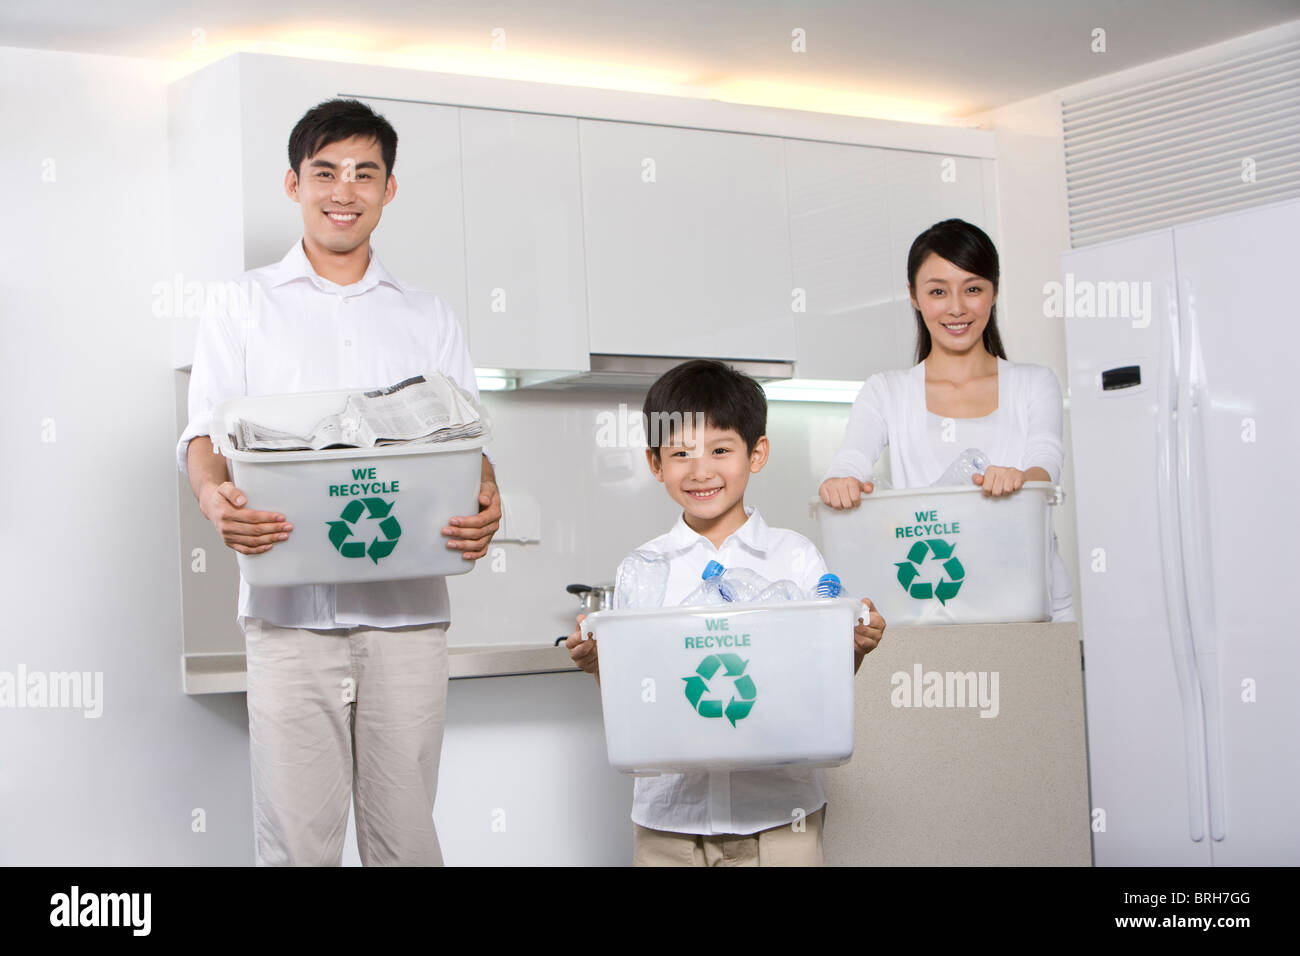 Family holding recycling boxes in kitchen - Stock Image